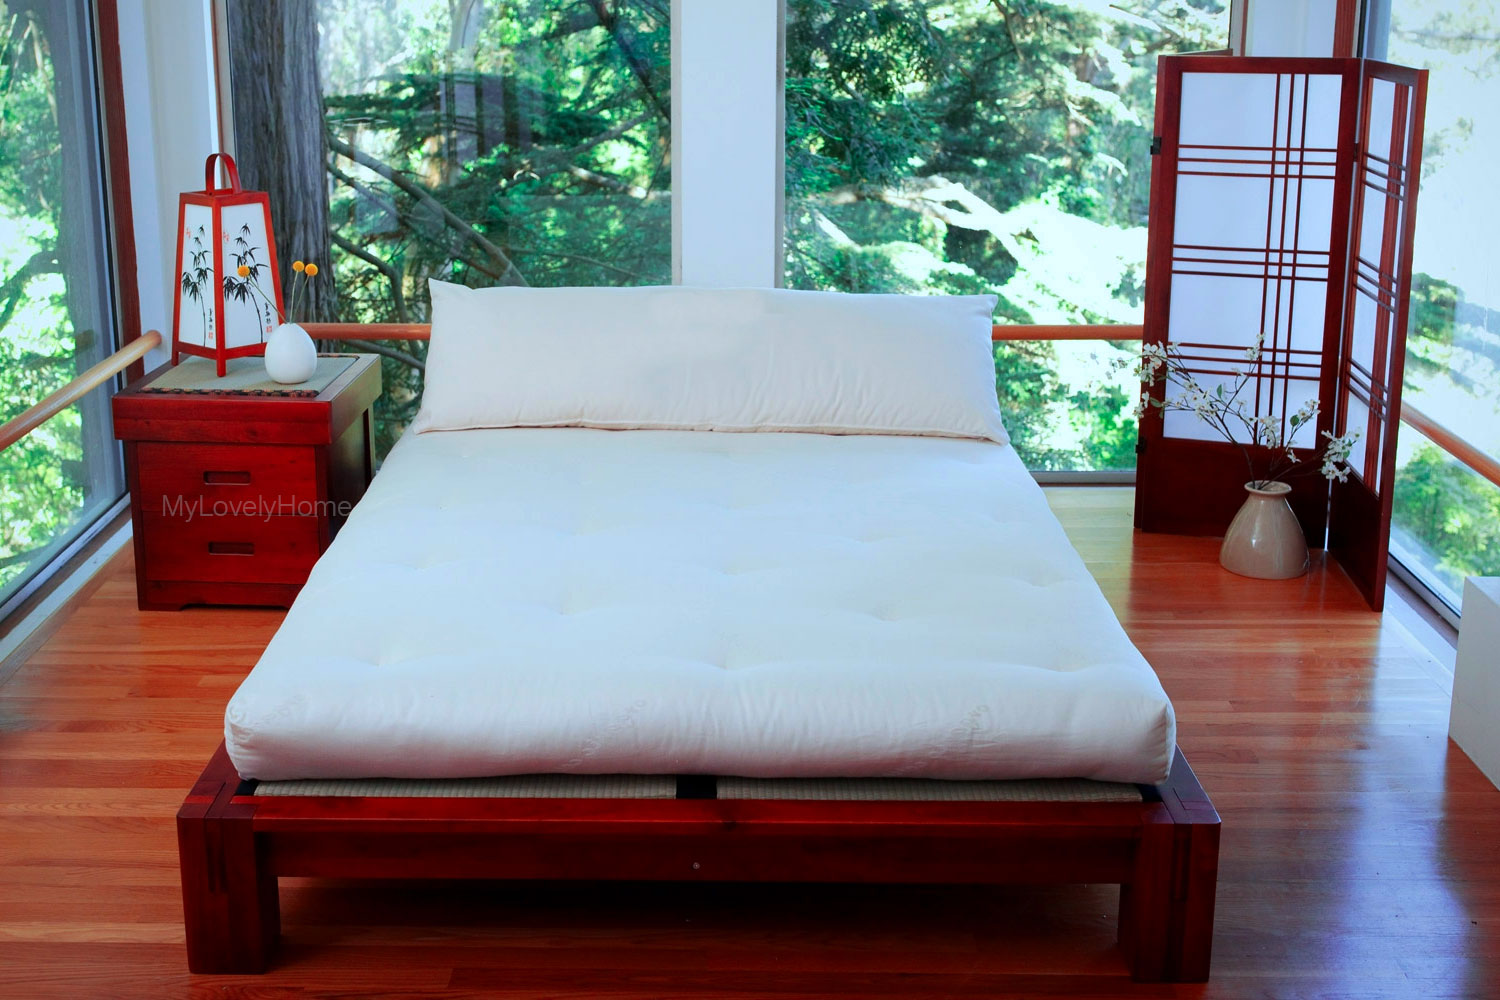 Japanese Style Bedroom Furniture Set Ideas - My Lovely Home